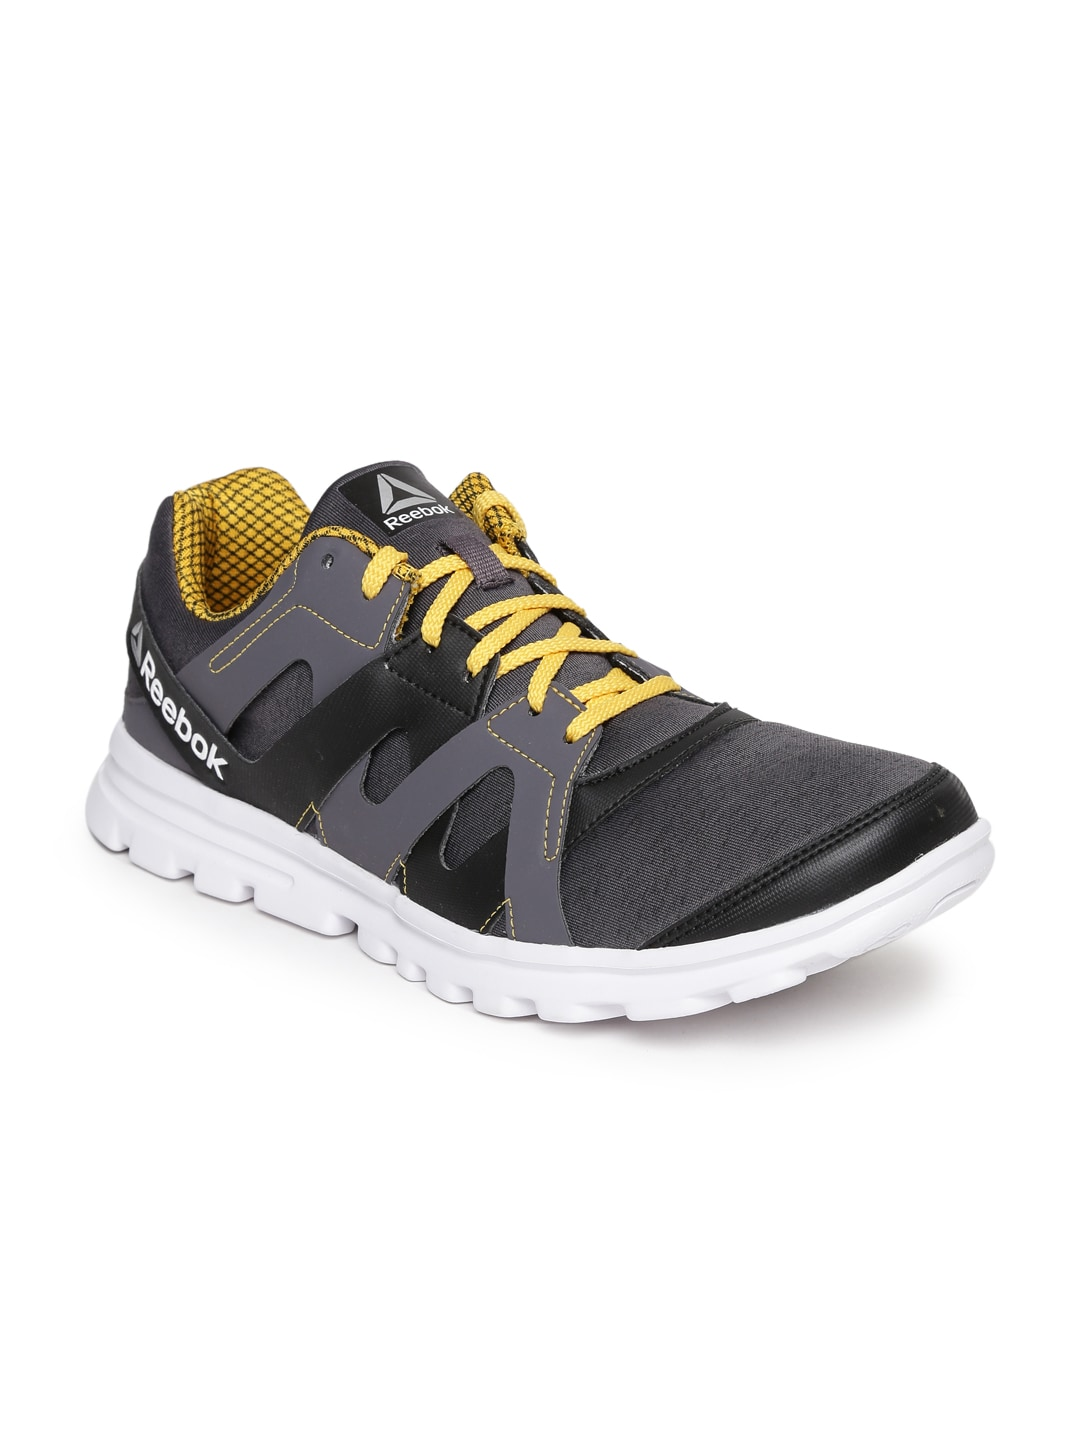 c67cee6decb8e0 Reebok Footwear Casual Shoes Watches - Buy Reebok Footwear Casual Shoes  Watches online in India